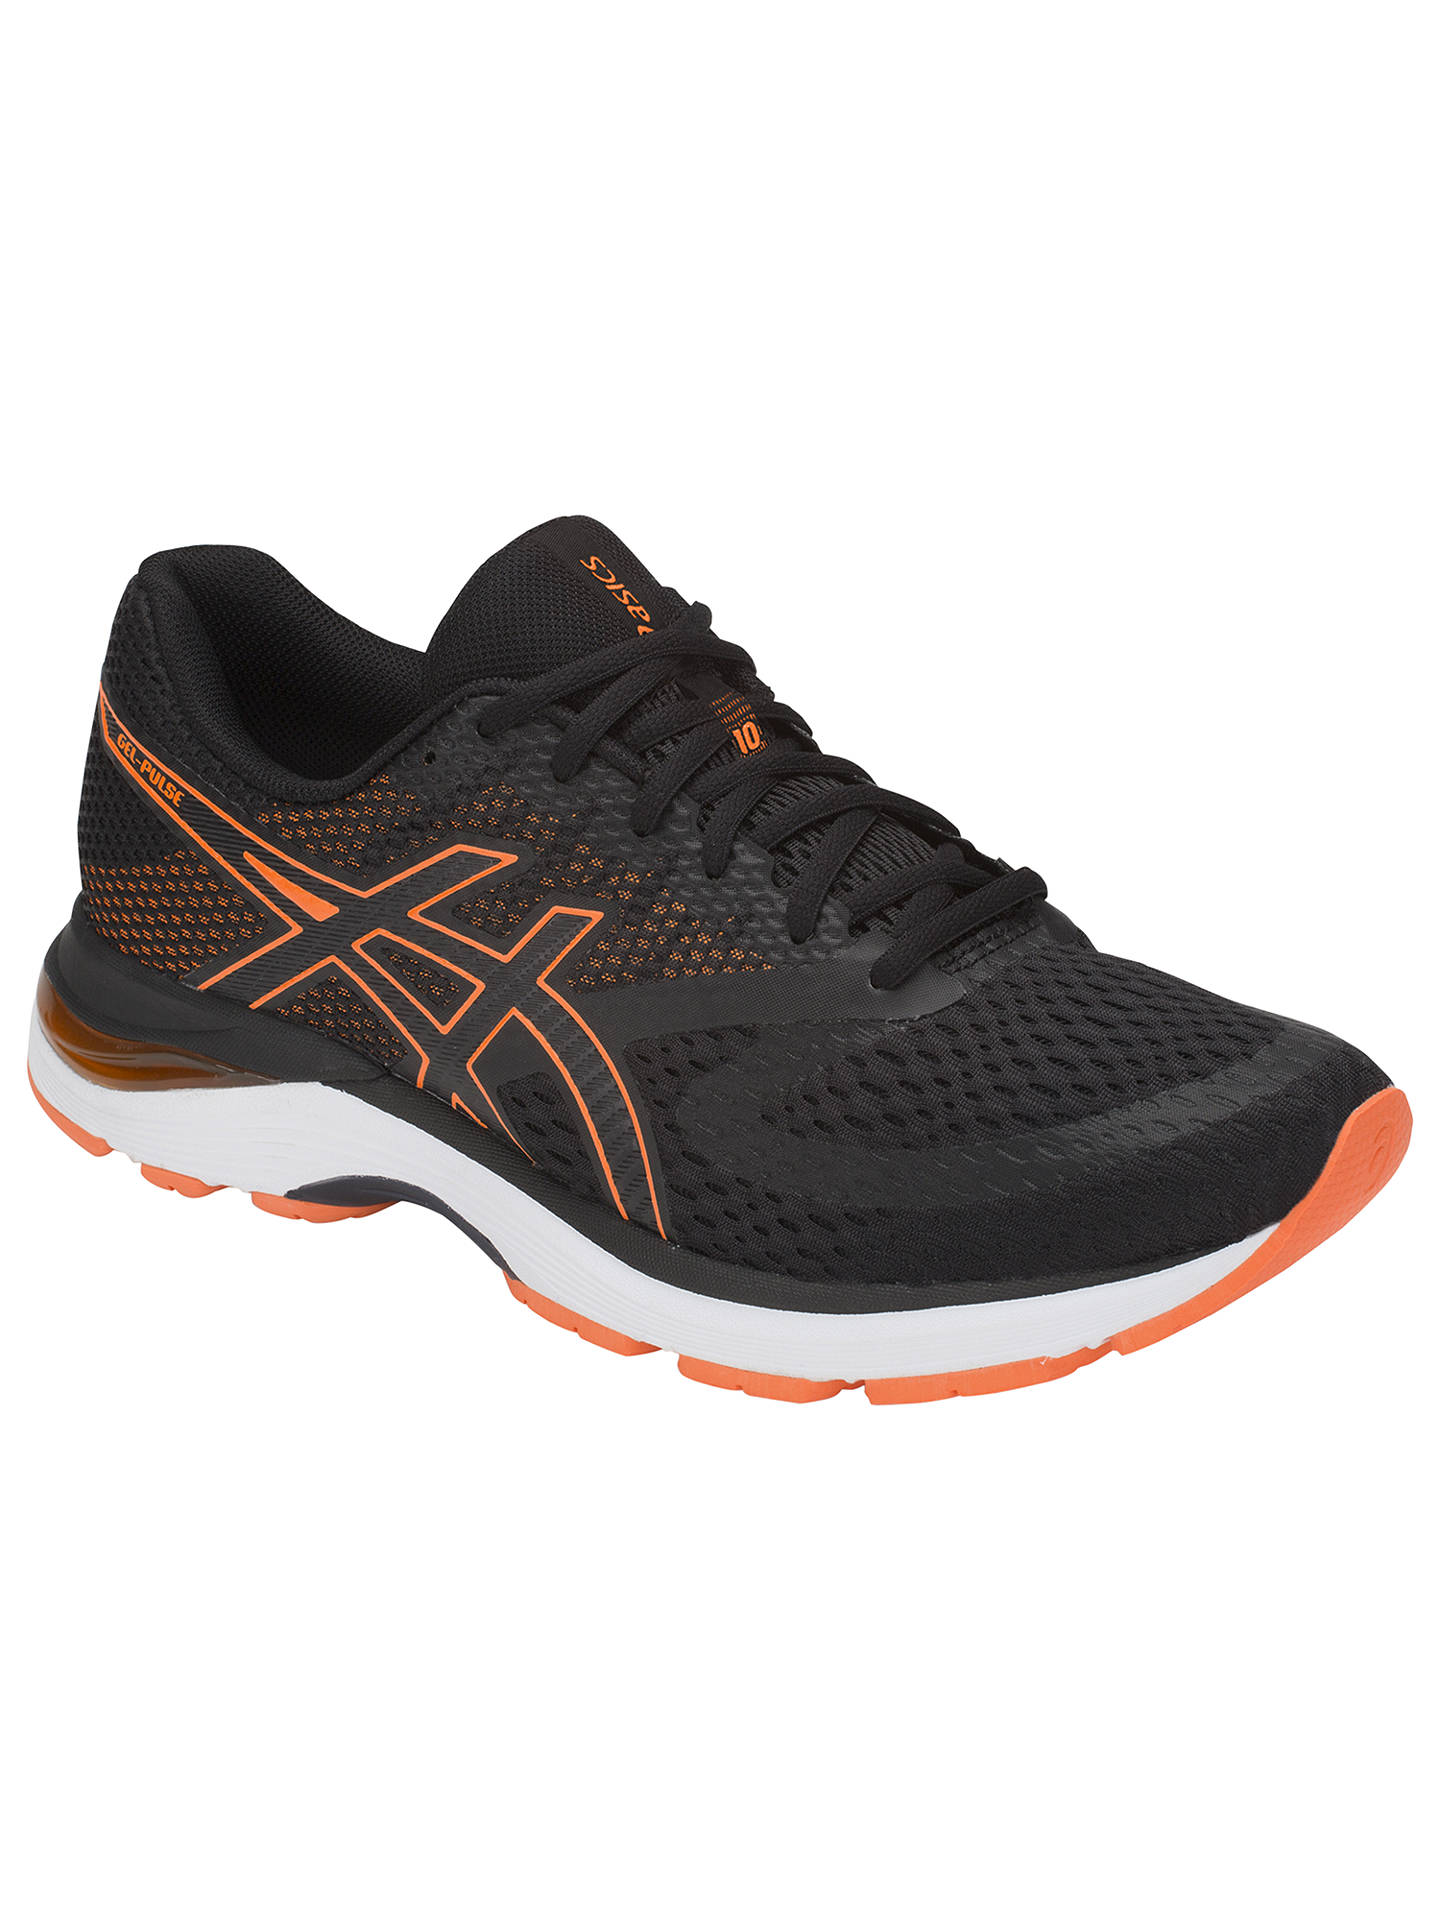 8 Reasons toNOT to Buy Asics Gel Pulse 9 (Nov 2019) | RunRepeat